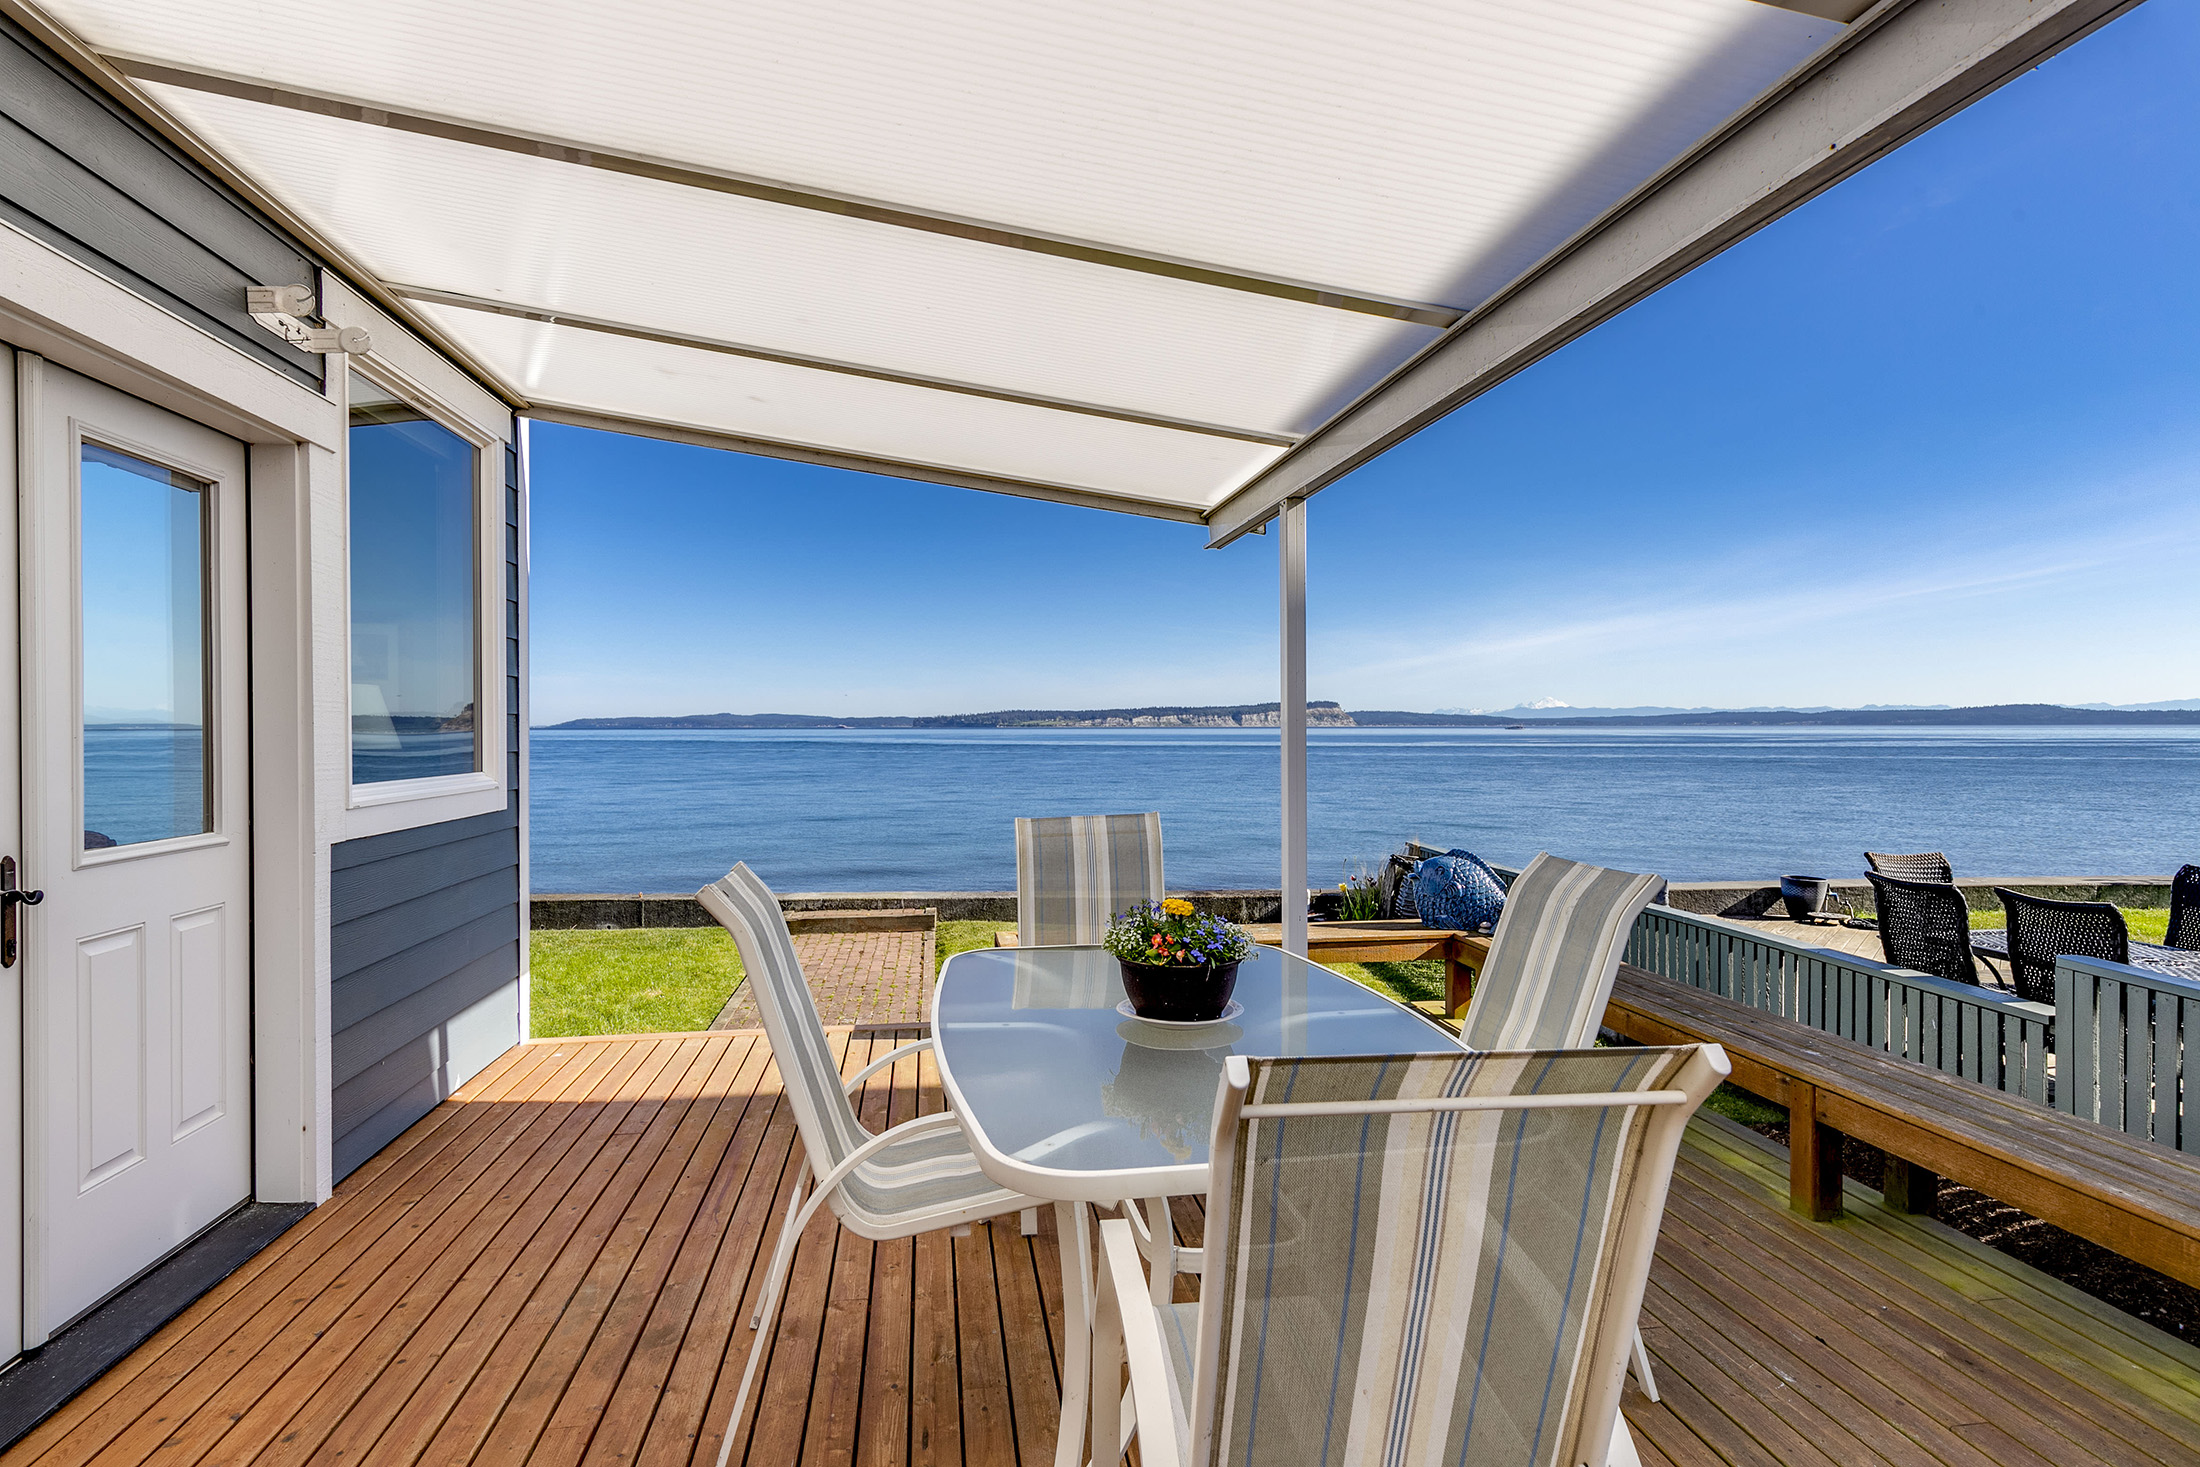 By the Numbers - The average residential waterfront prices paid were $837,000 among 11 homes sold at Hansville, and $895,000 among 36 homes sold at Poulsbo.